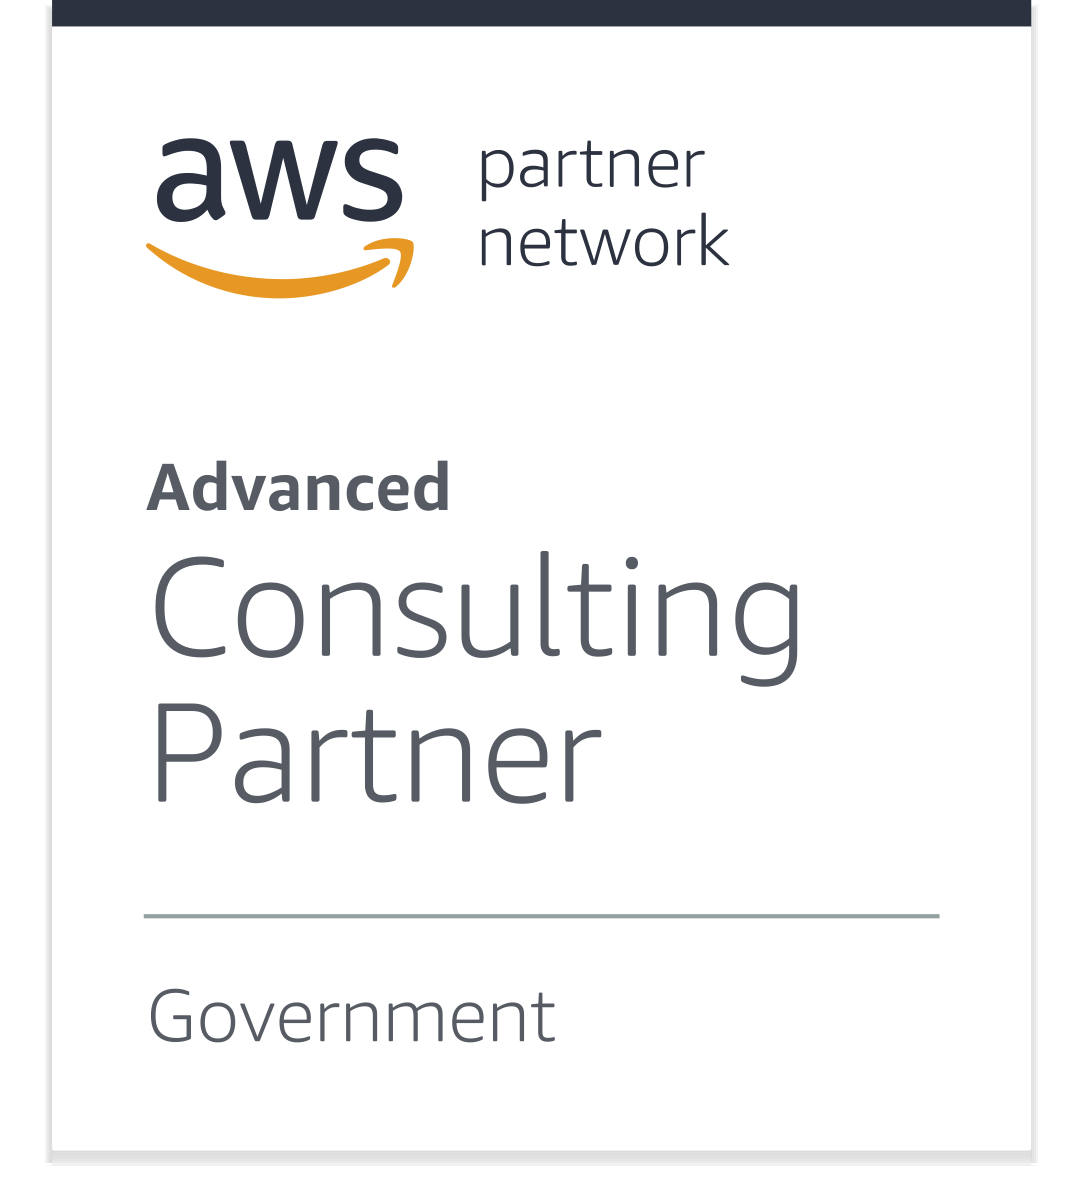 https://pyramidsystems.com/wp-content/uploads/2021/07/Government.png